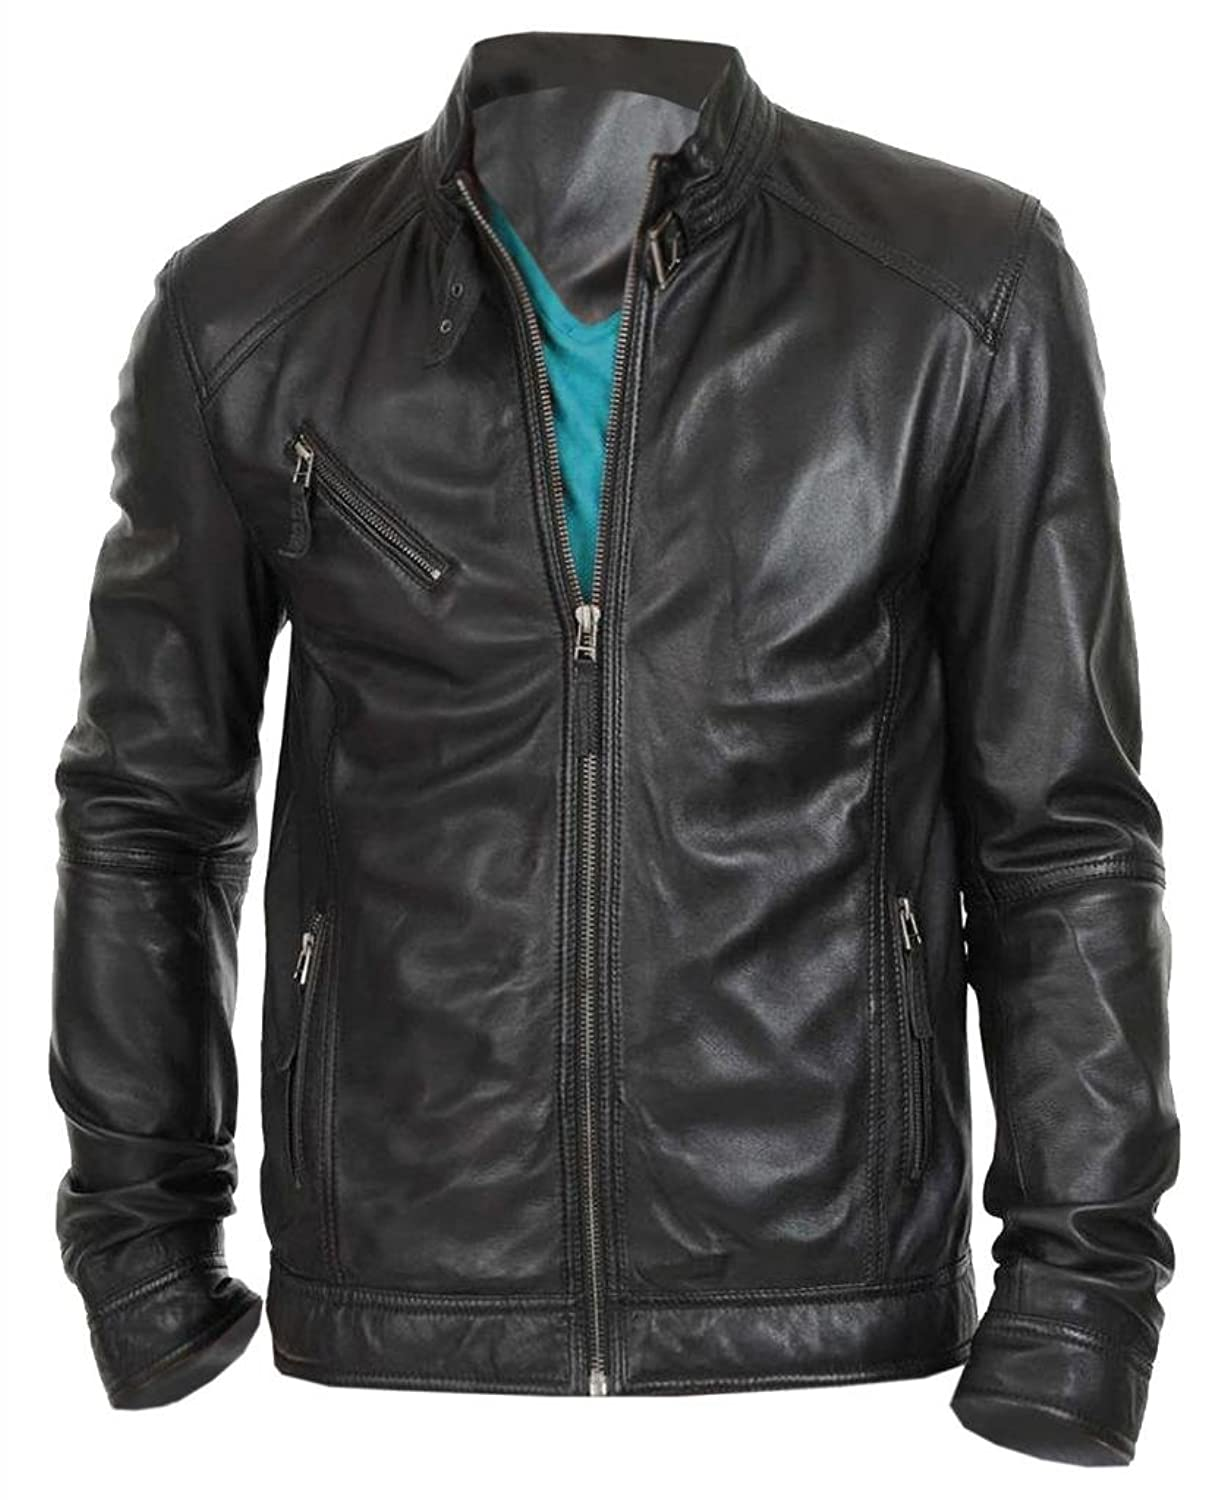 Wantdo Men's Fashion Faux Jackets Pu Leather Jackets With Removable Hood With Gift The Leather Factory Men s New